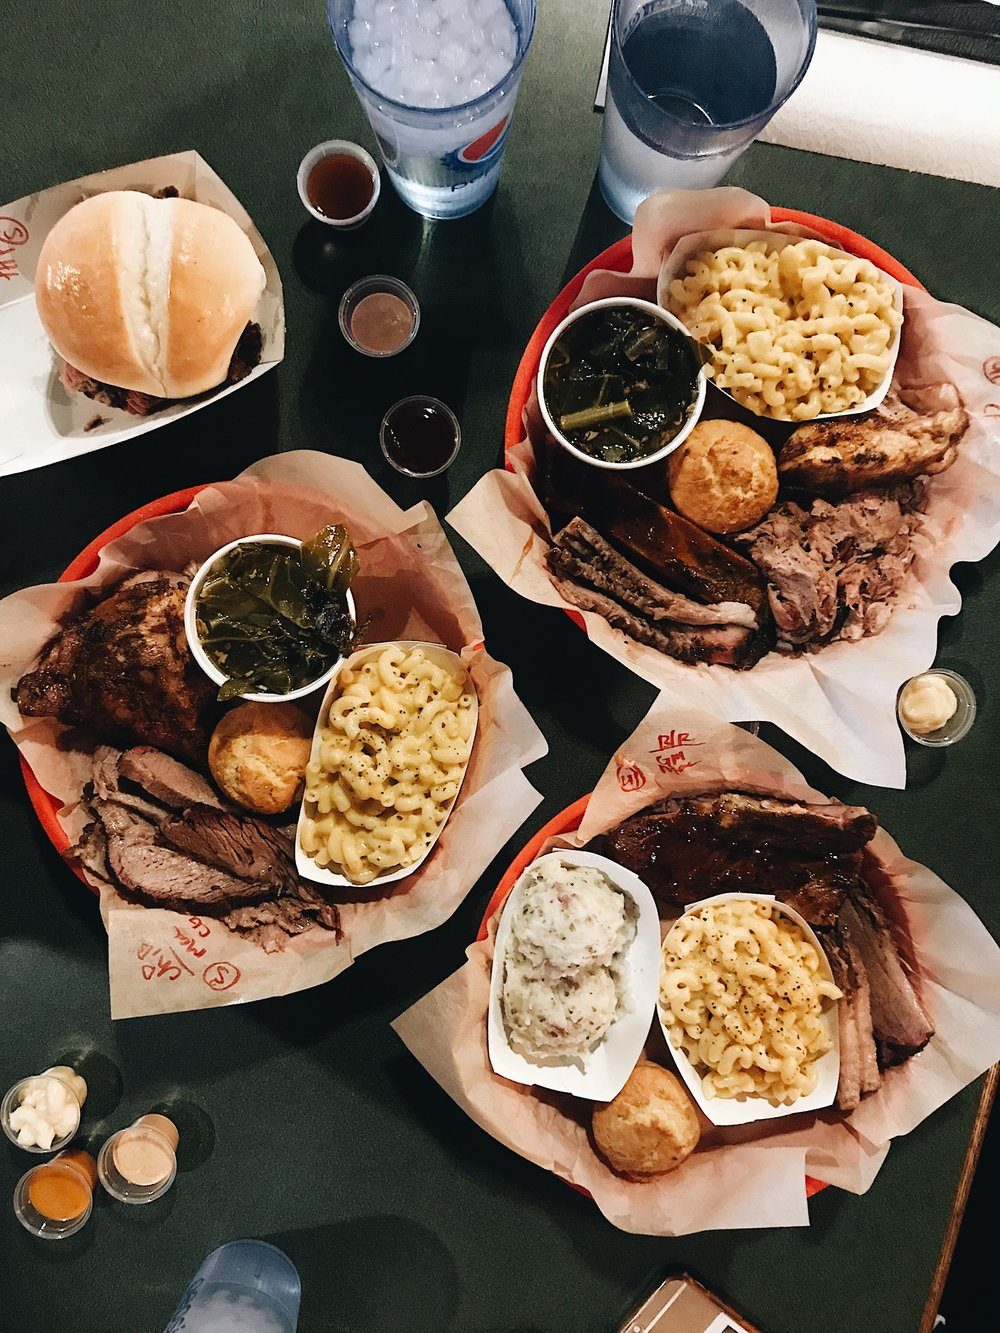 We ended the day after the hike with a hearty, delicious meal at  Lonny Boy's Barbecue  in Hurricane, Utah. They have multiple locations but our Airbnb happened to be in Hurricane, so this was beyond perfect.  We were all starving and in need of sustenance, so a perfect post-crazy hike meal! Shout out to our Airbnb host to feeding us a homemade breakfast the morning after as well! We ate good after this hike guys. Heart, body, and soul are soooo full.   Shot on iPhone.